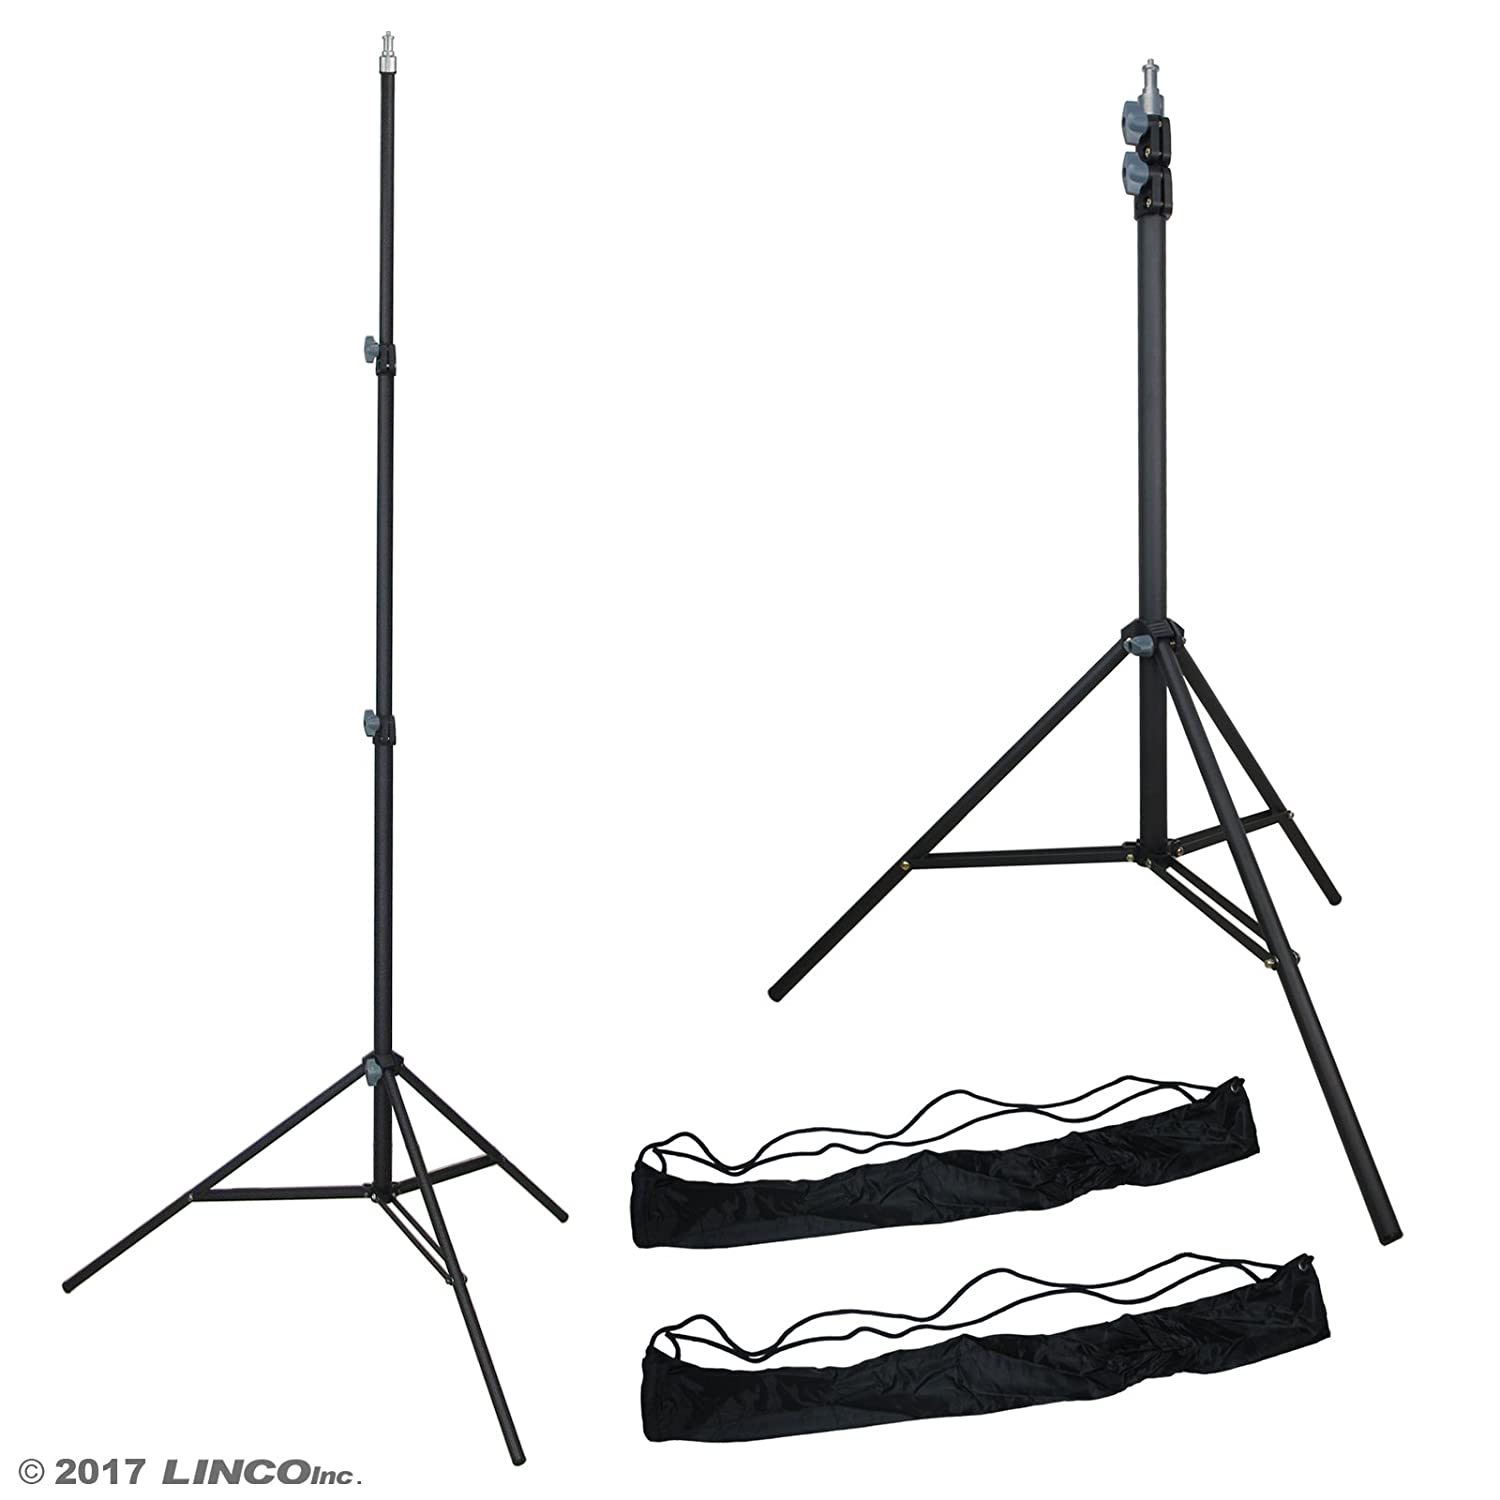 LINCO Lincostore Zenith 7 feet/225cm Photo Studio Light Stands Set Two HTC Vive VR, Video, Portrait Product Photography LINCO INC 4335031429